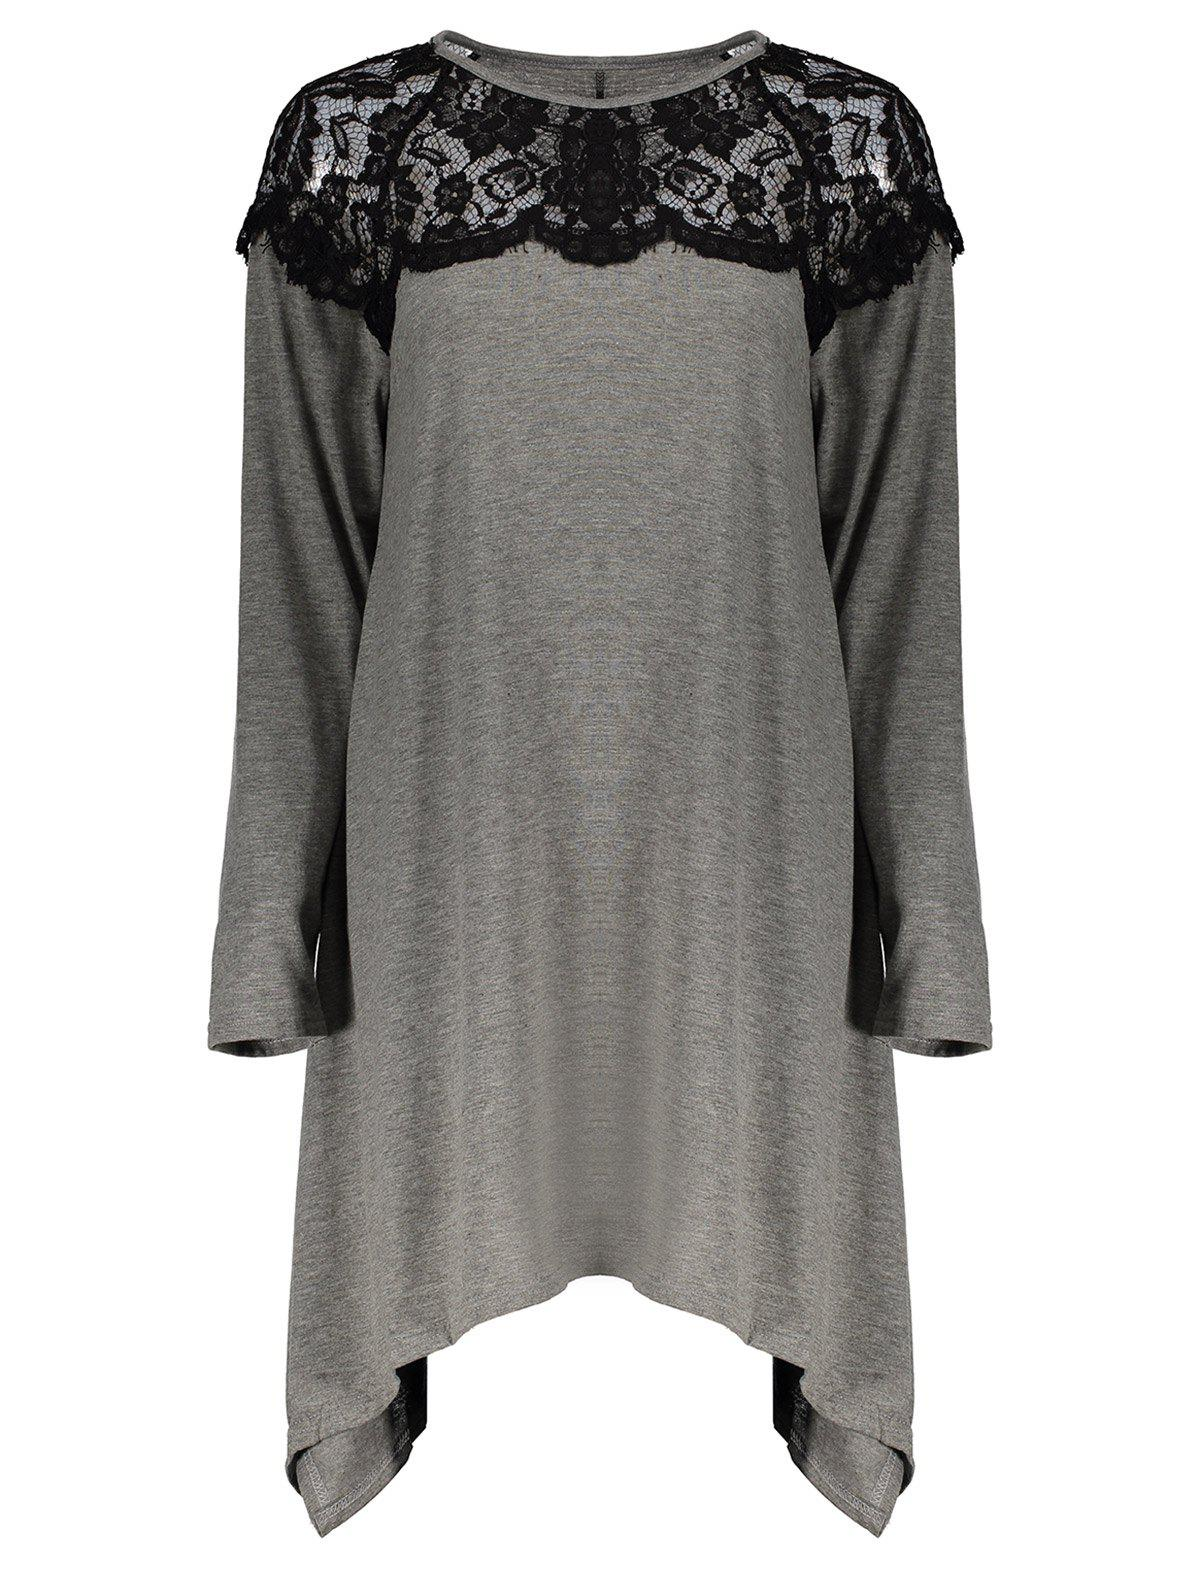 Discount Fashionable Round Neck Long Sleeve Lace Splicing Loose-Fitting Women's T-Shirt